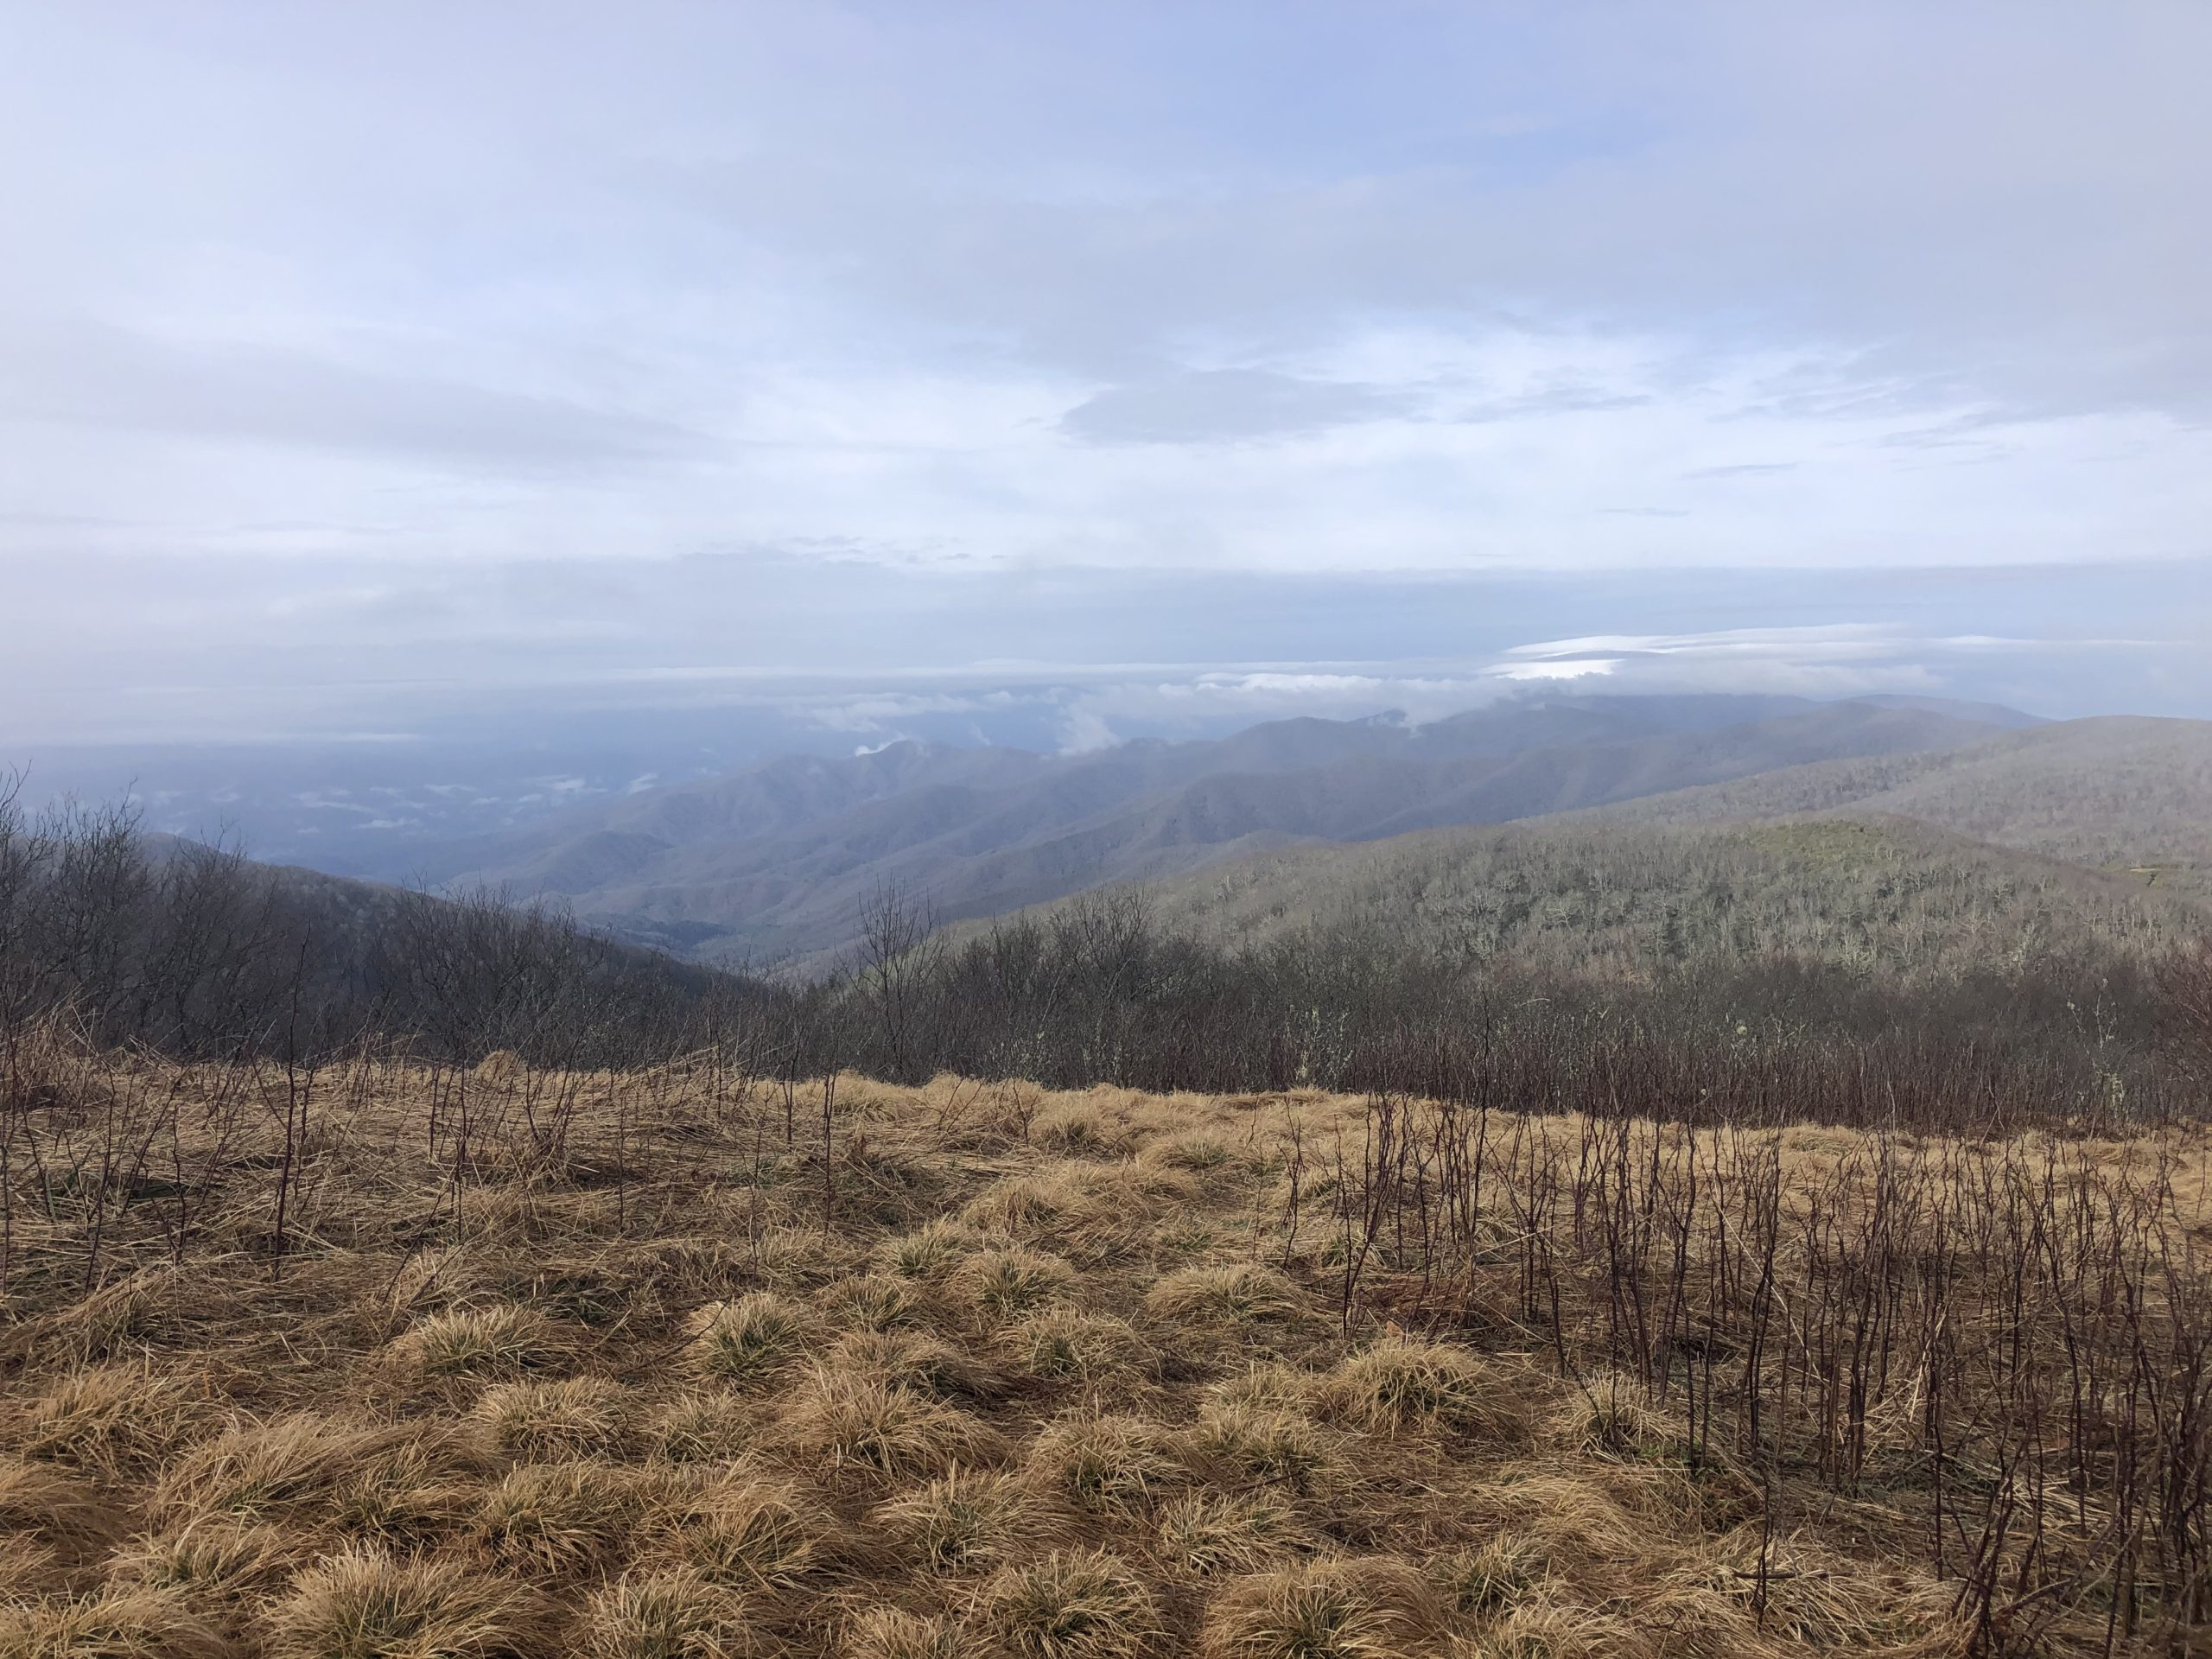 I hiked 200 miles of the Appalachian Trail